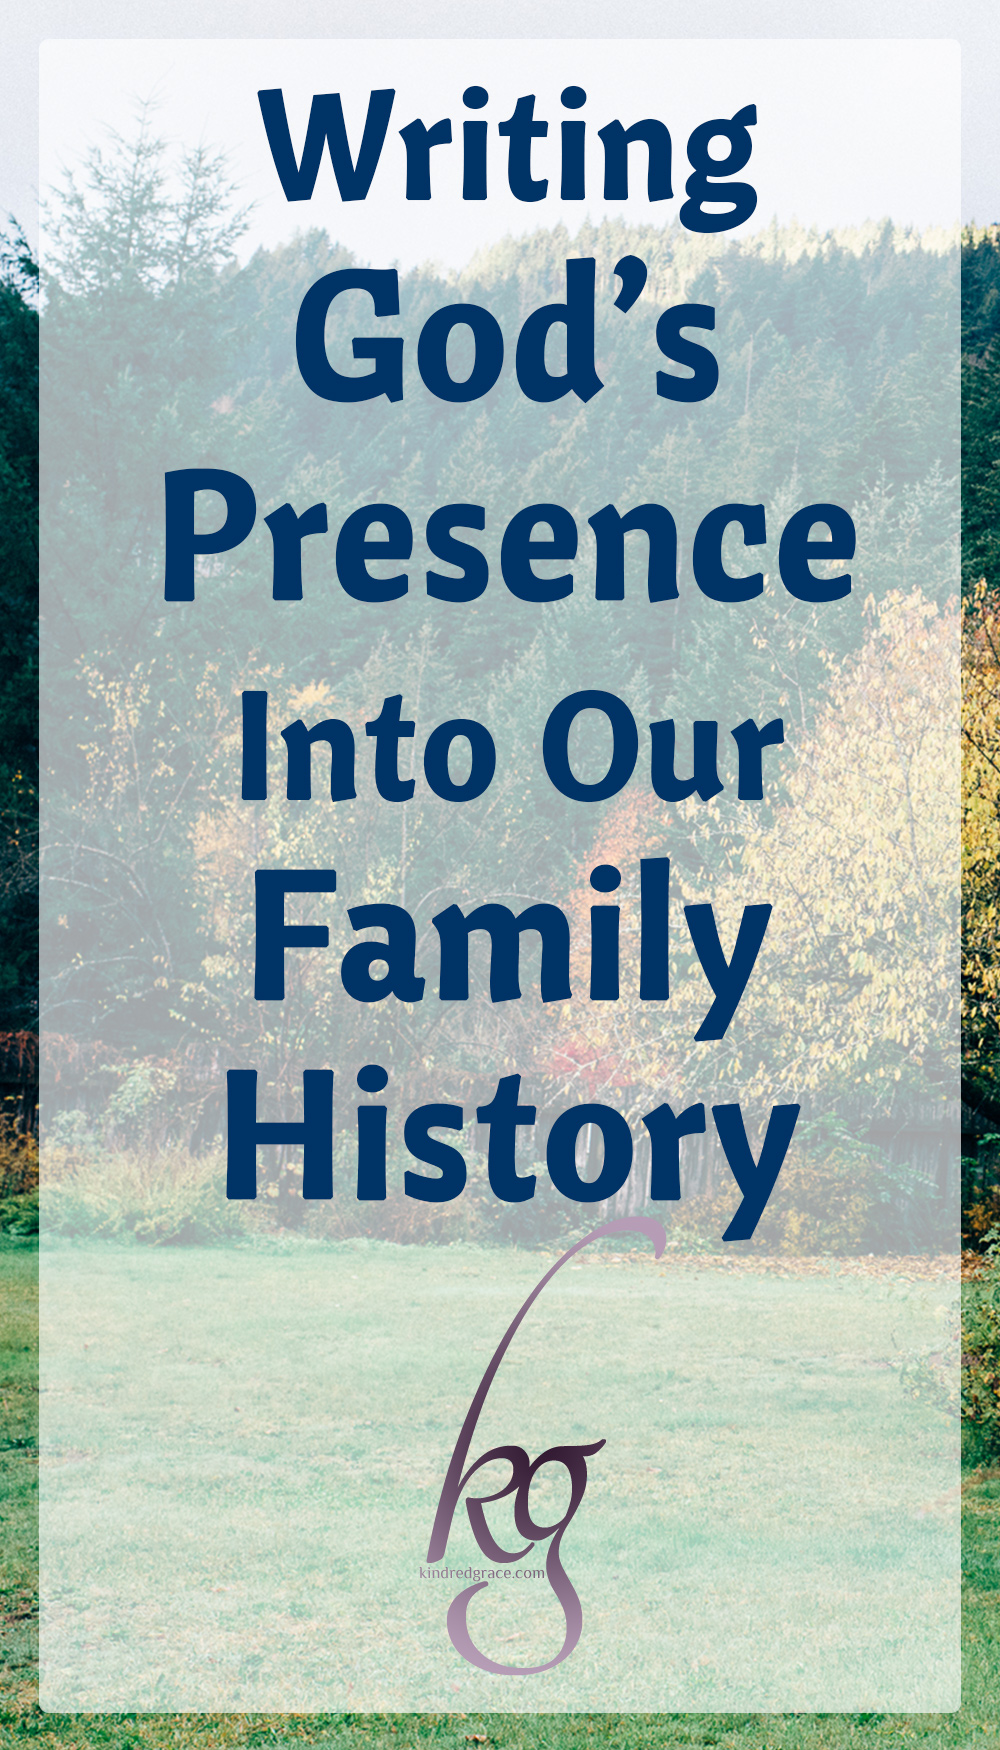 Here is the trick with our heritage: there's more than just the good that passes down. While I received rich spiritual nourishment that settled my roots down deep, along with the good comes a history of brokenness. via @KindredGrace